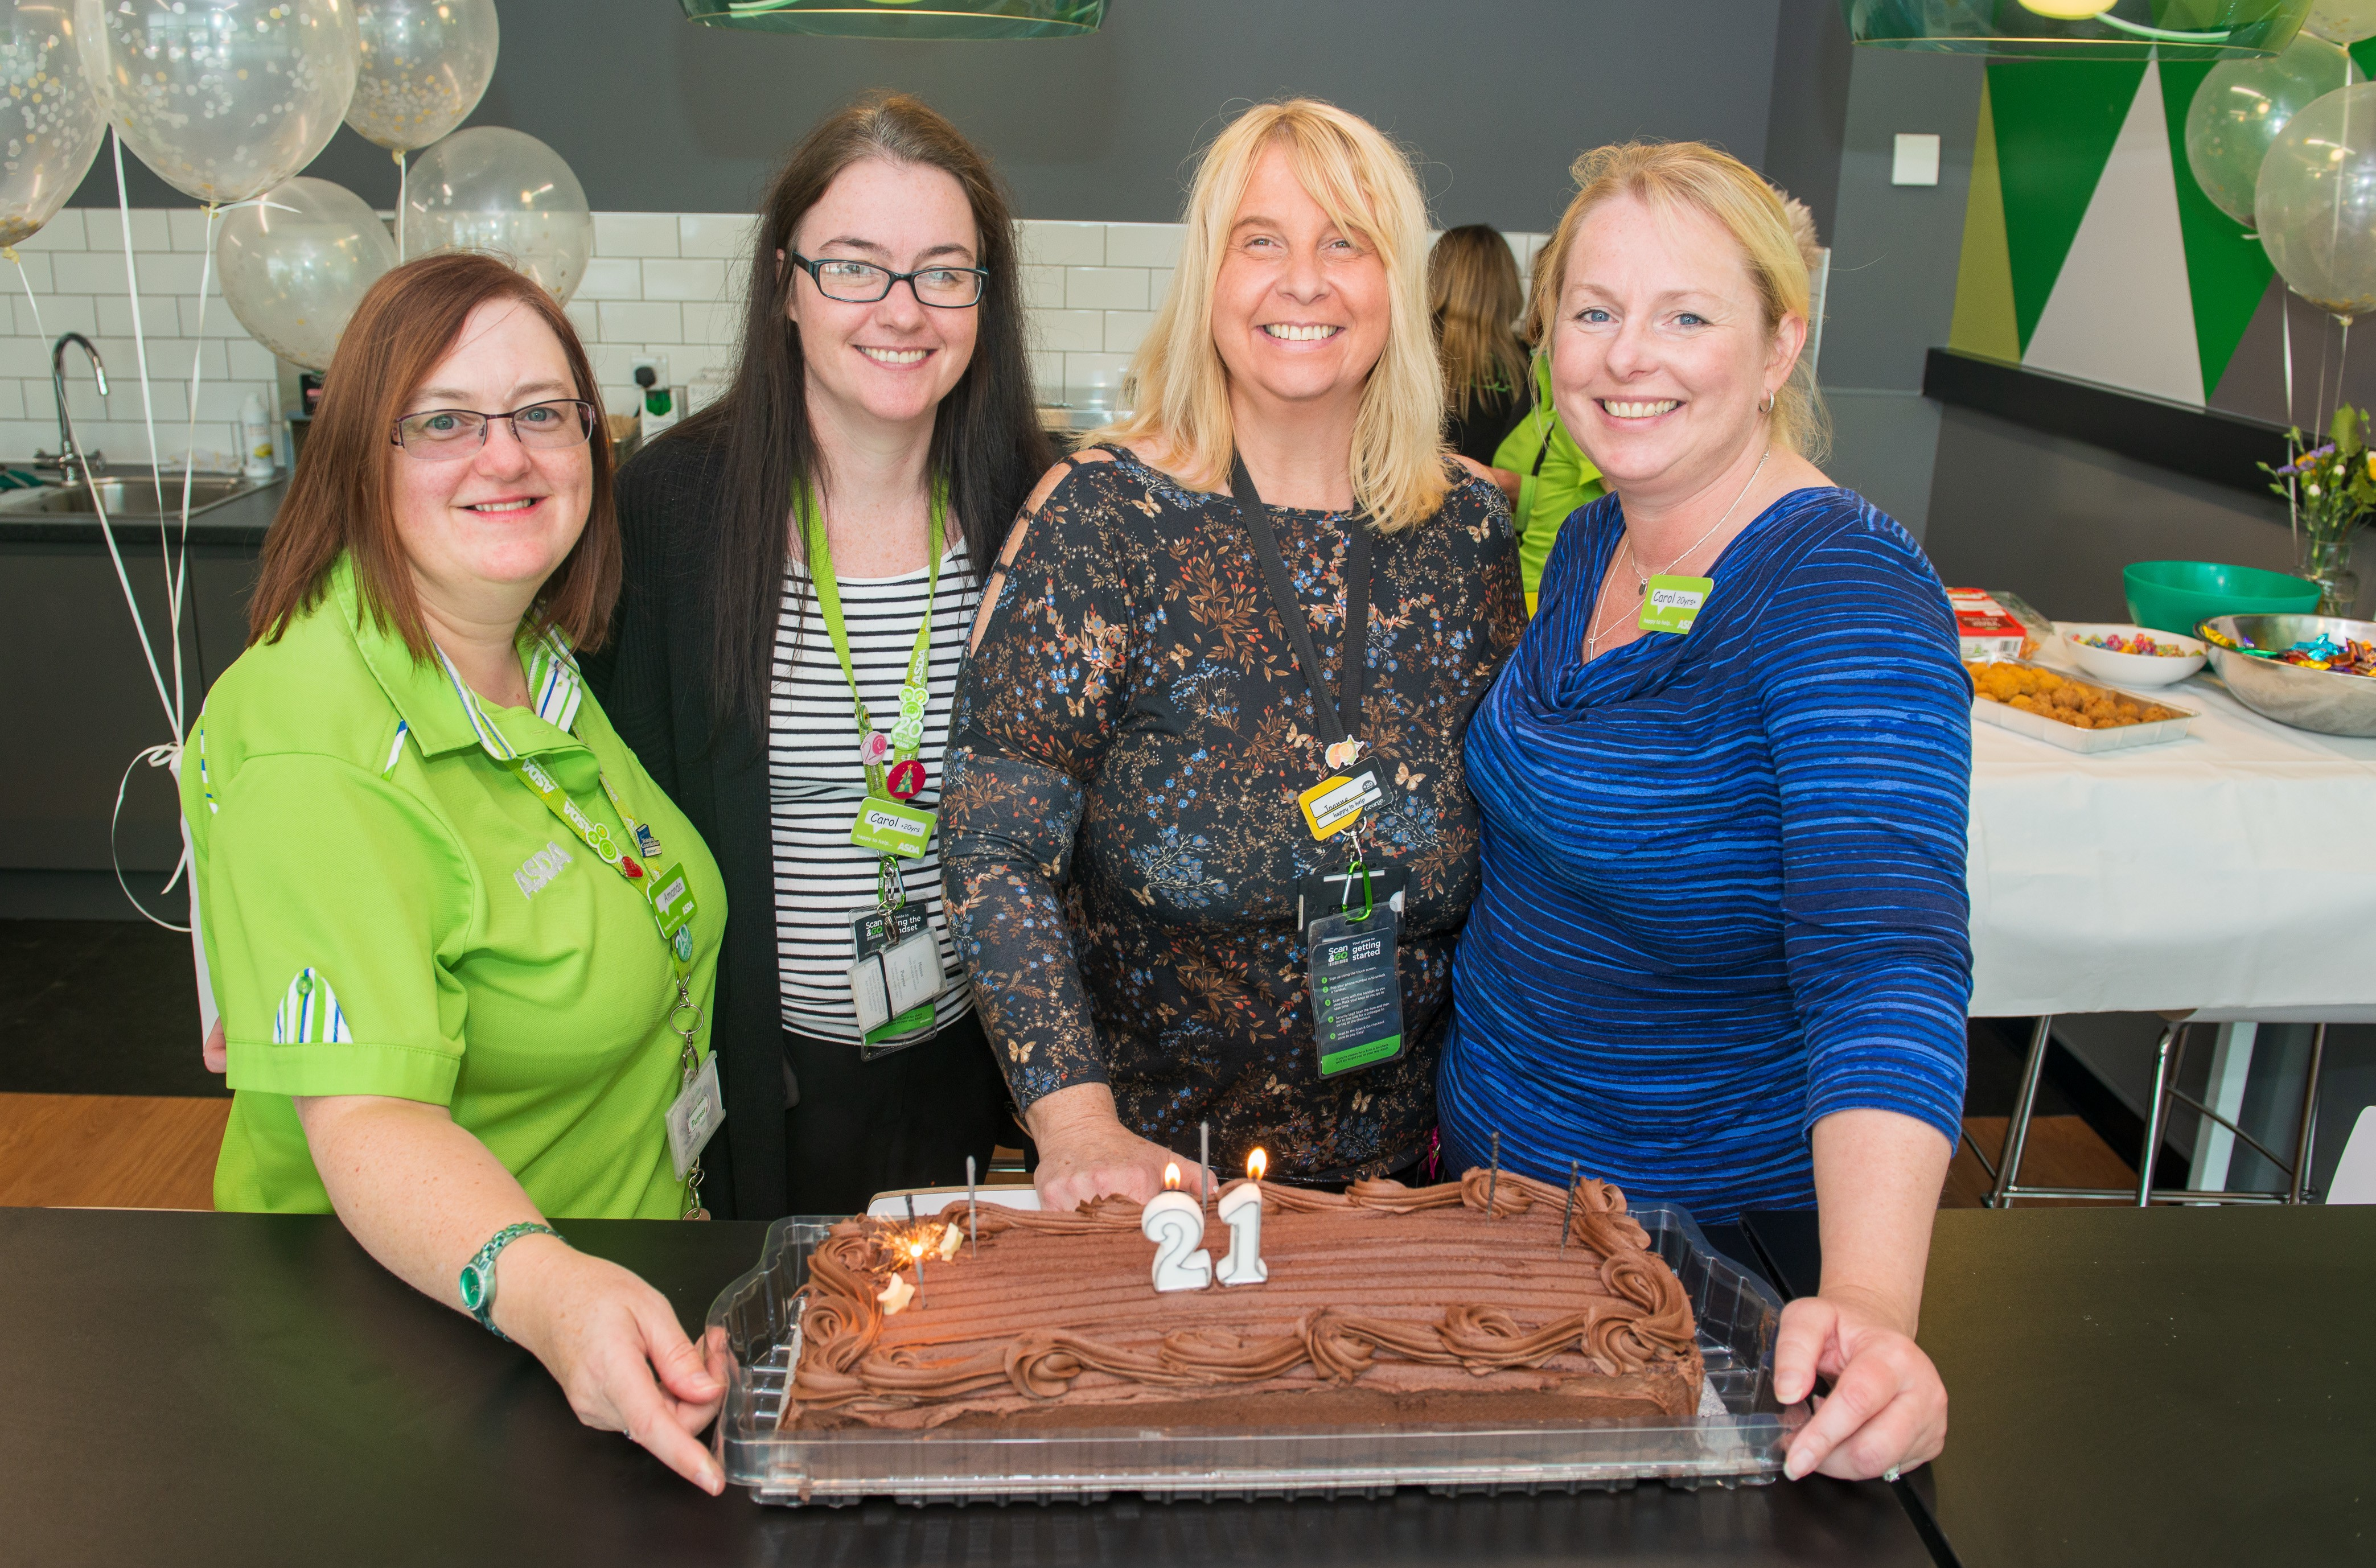 Long-serving colleagues at Asda Kilmarnock celebrate the store's 21st birthday